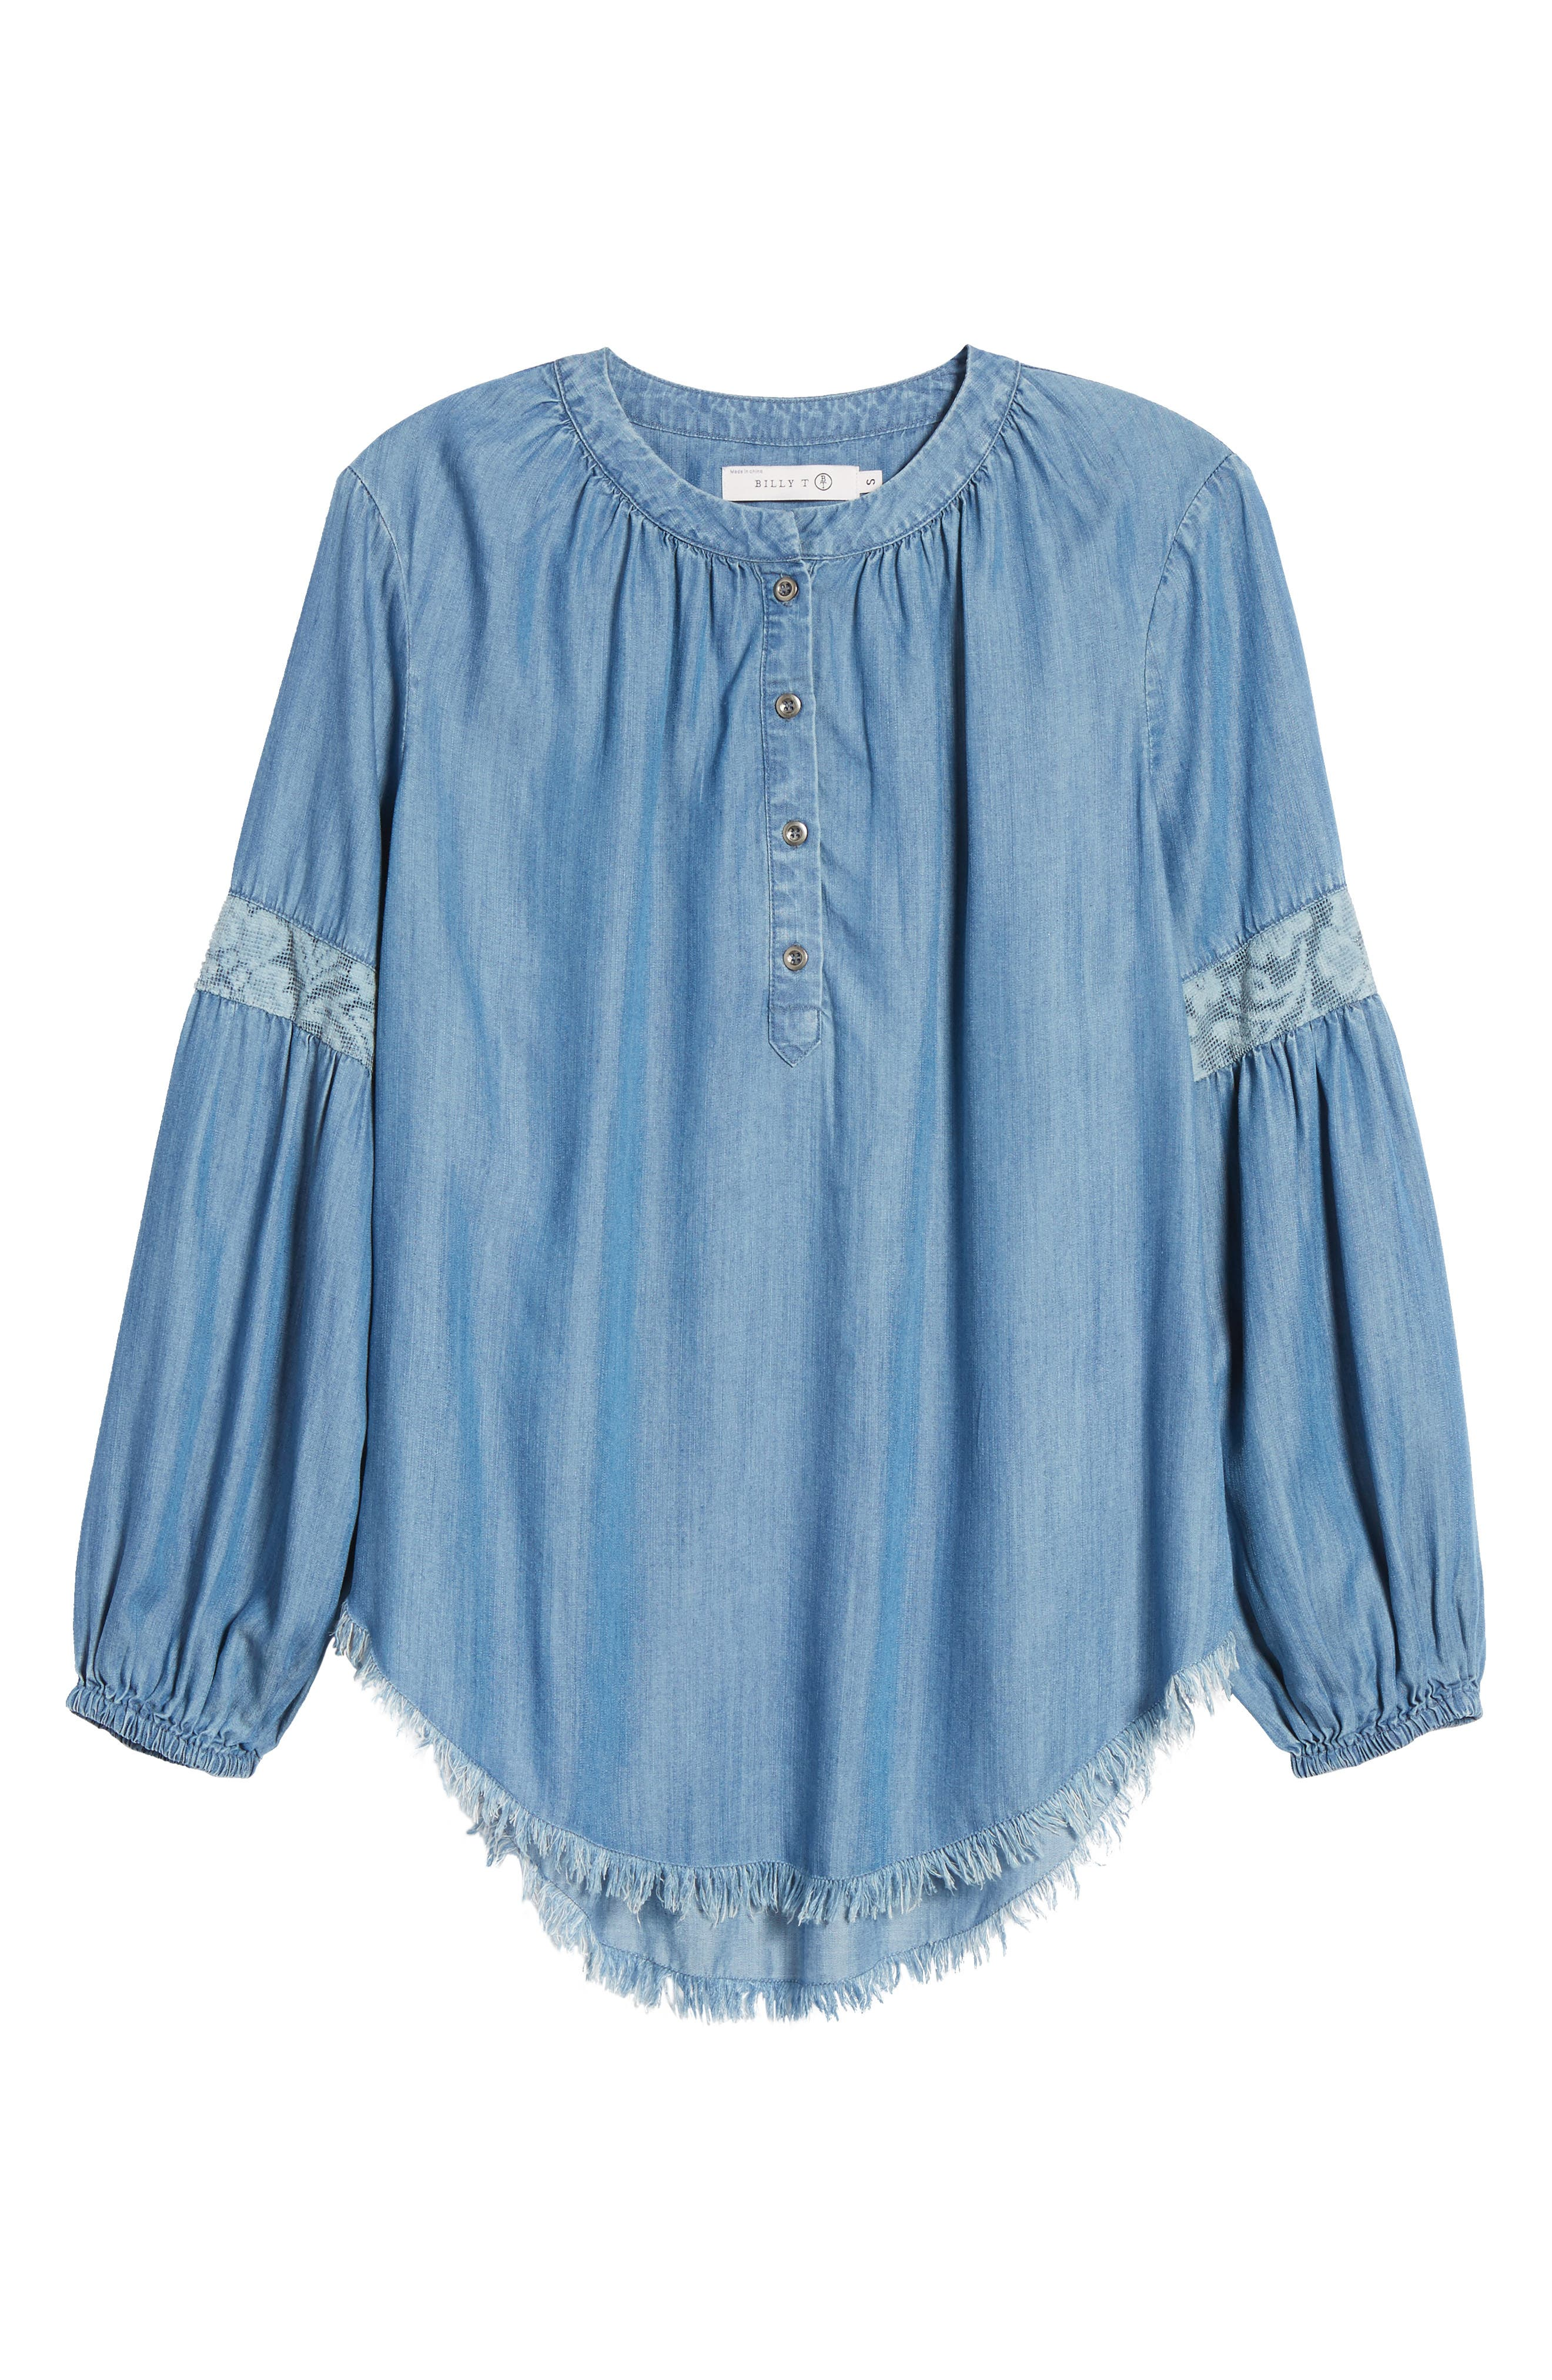 Alternate Image 1 Selected - Billy T Frayed Hem Chambray Top